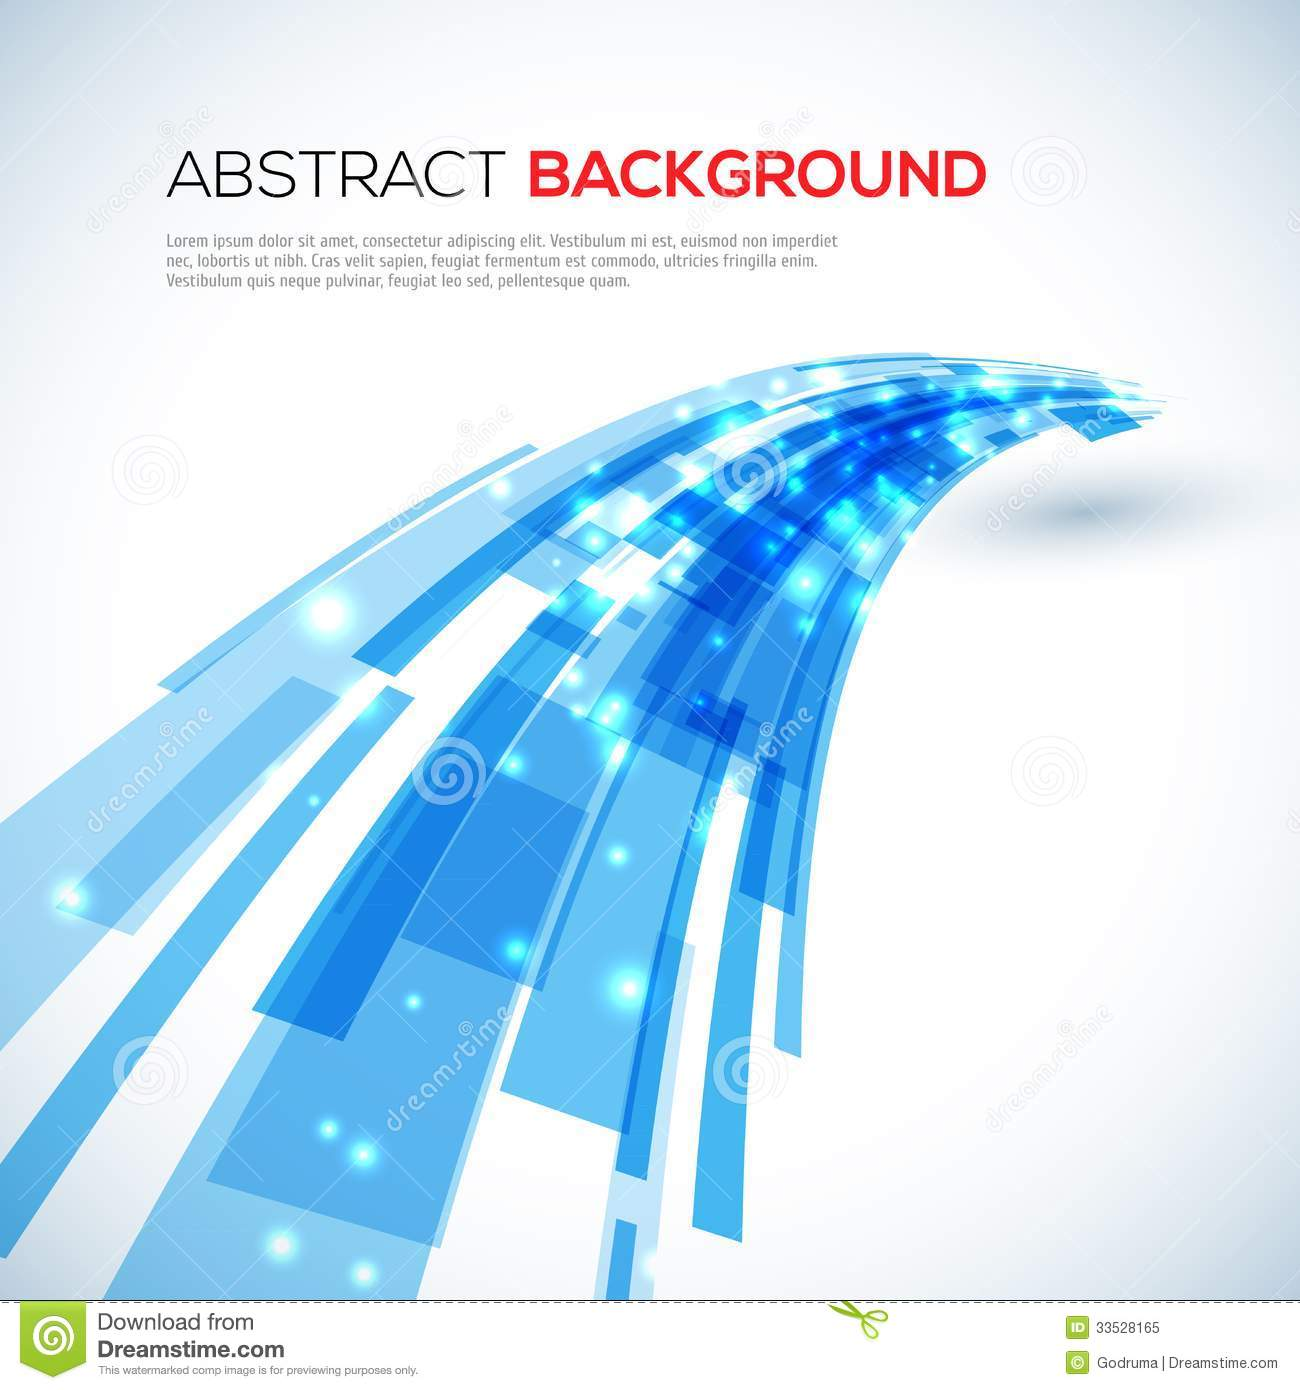 abstract background vector illustration - photo #43